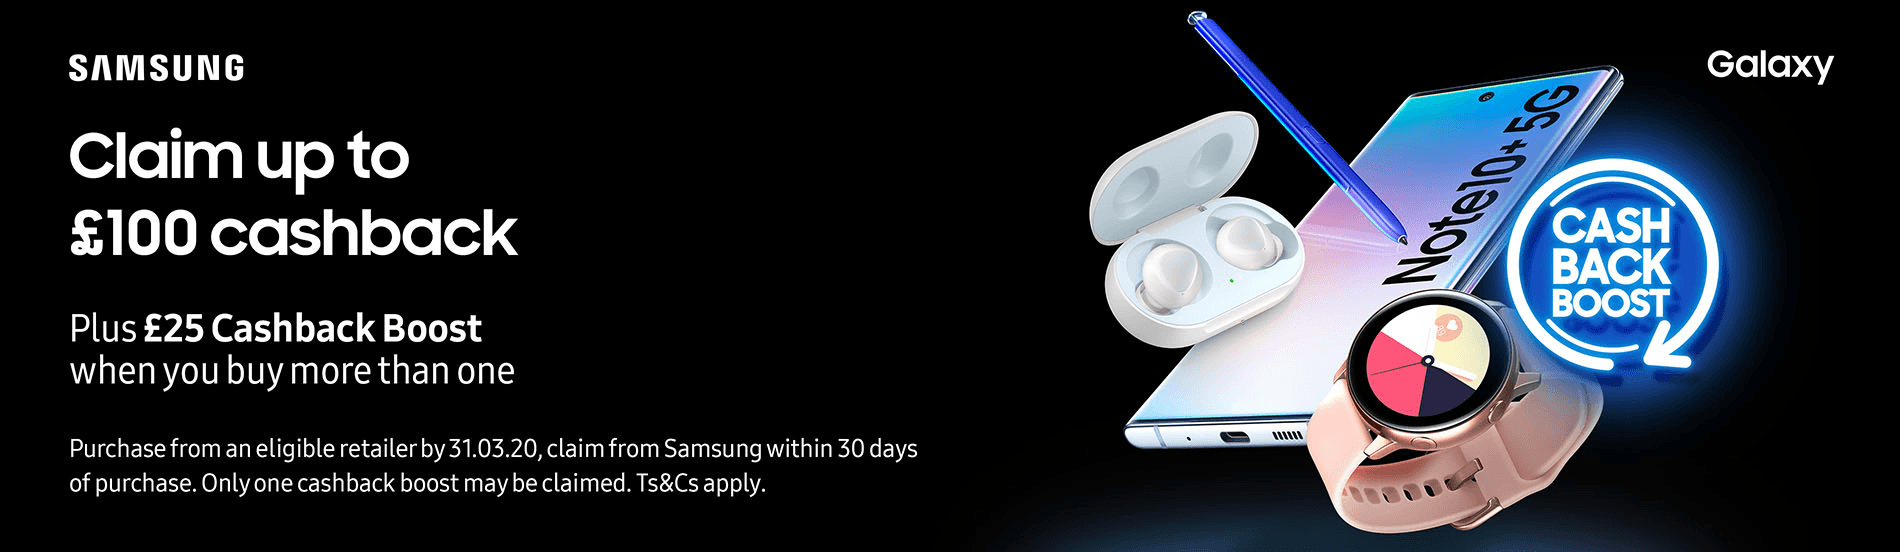 Claim up to £100 cashback from Samsung with your new Samsung phone deal